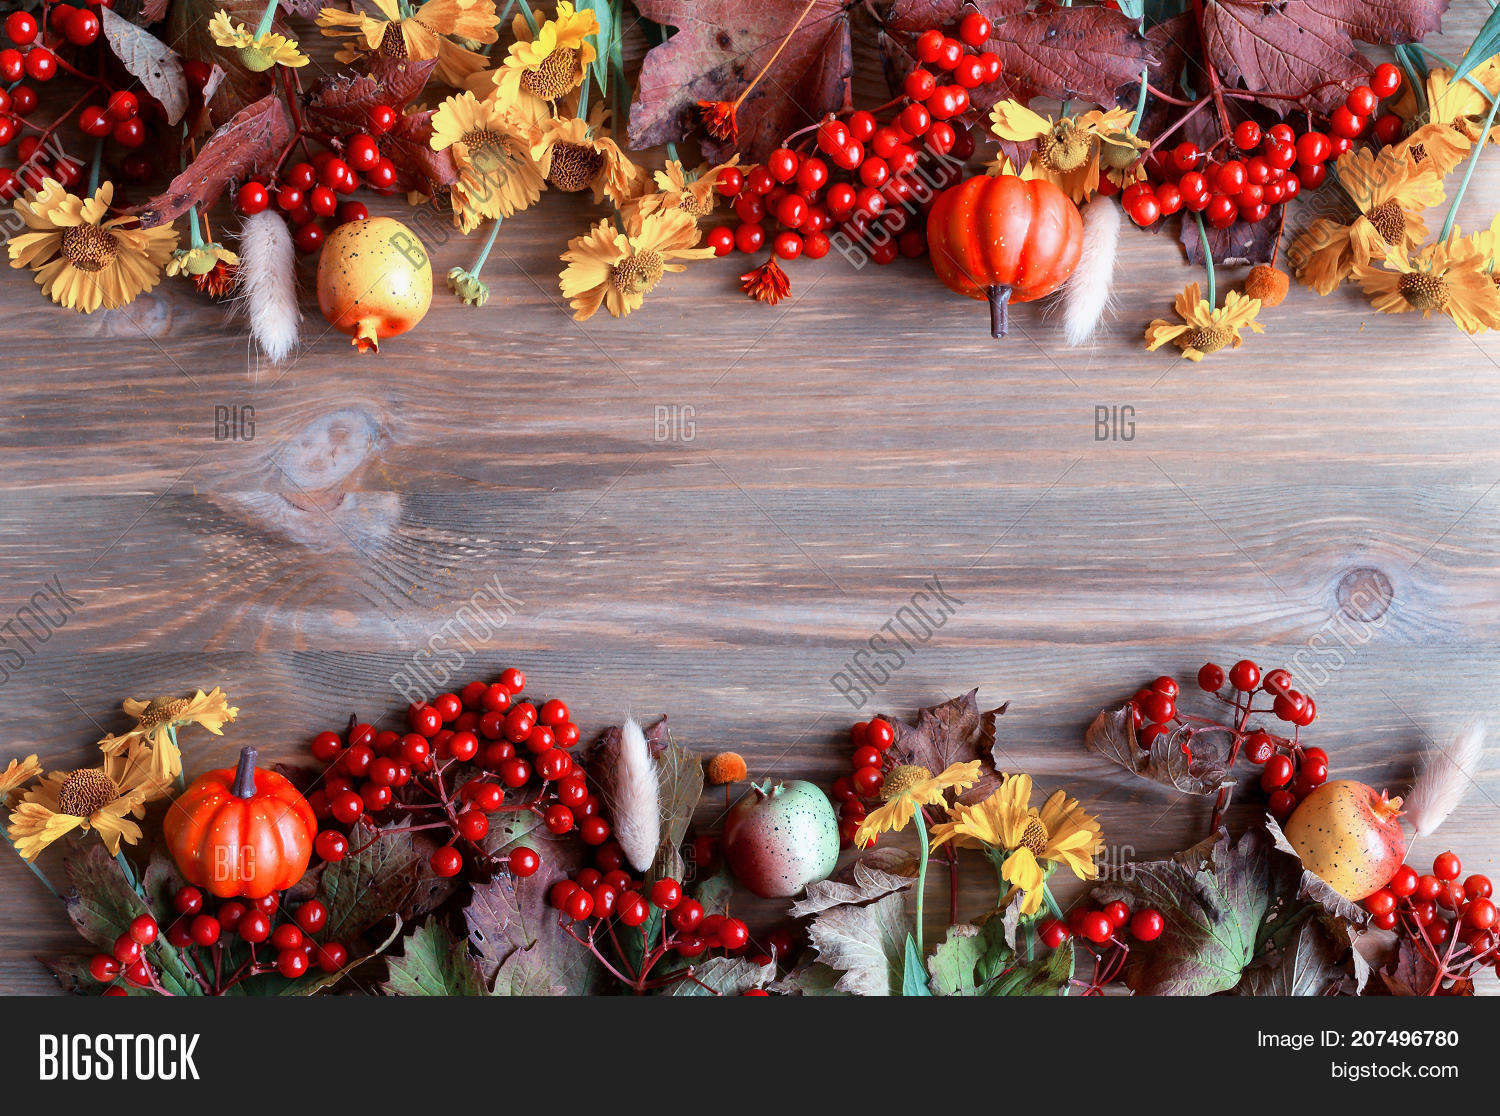 Fall Thanksgiving Image Photo Free Trial Bigstock